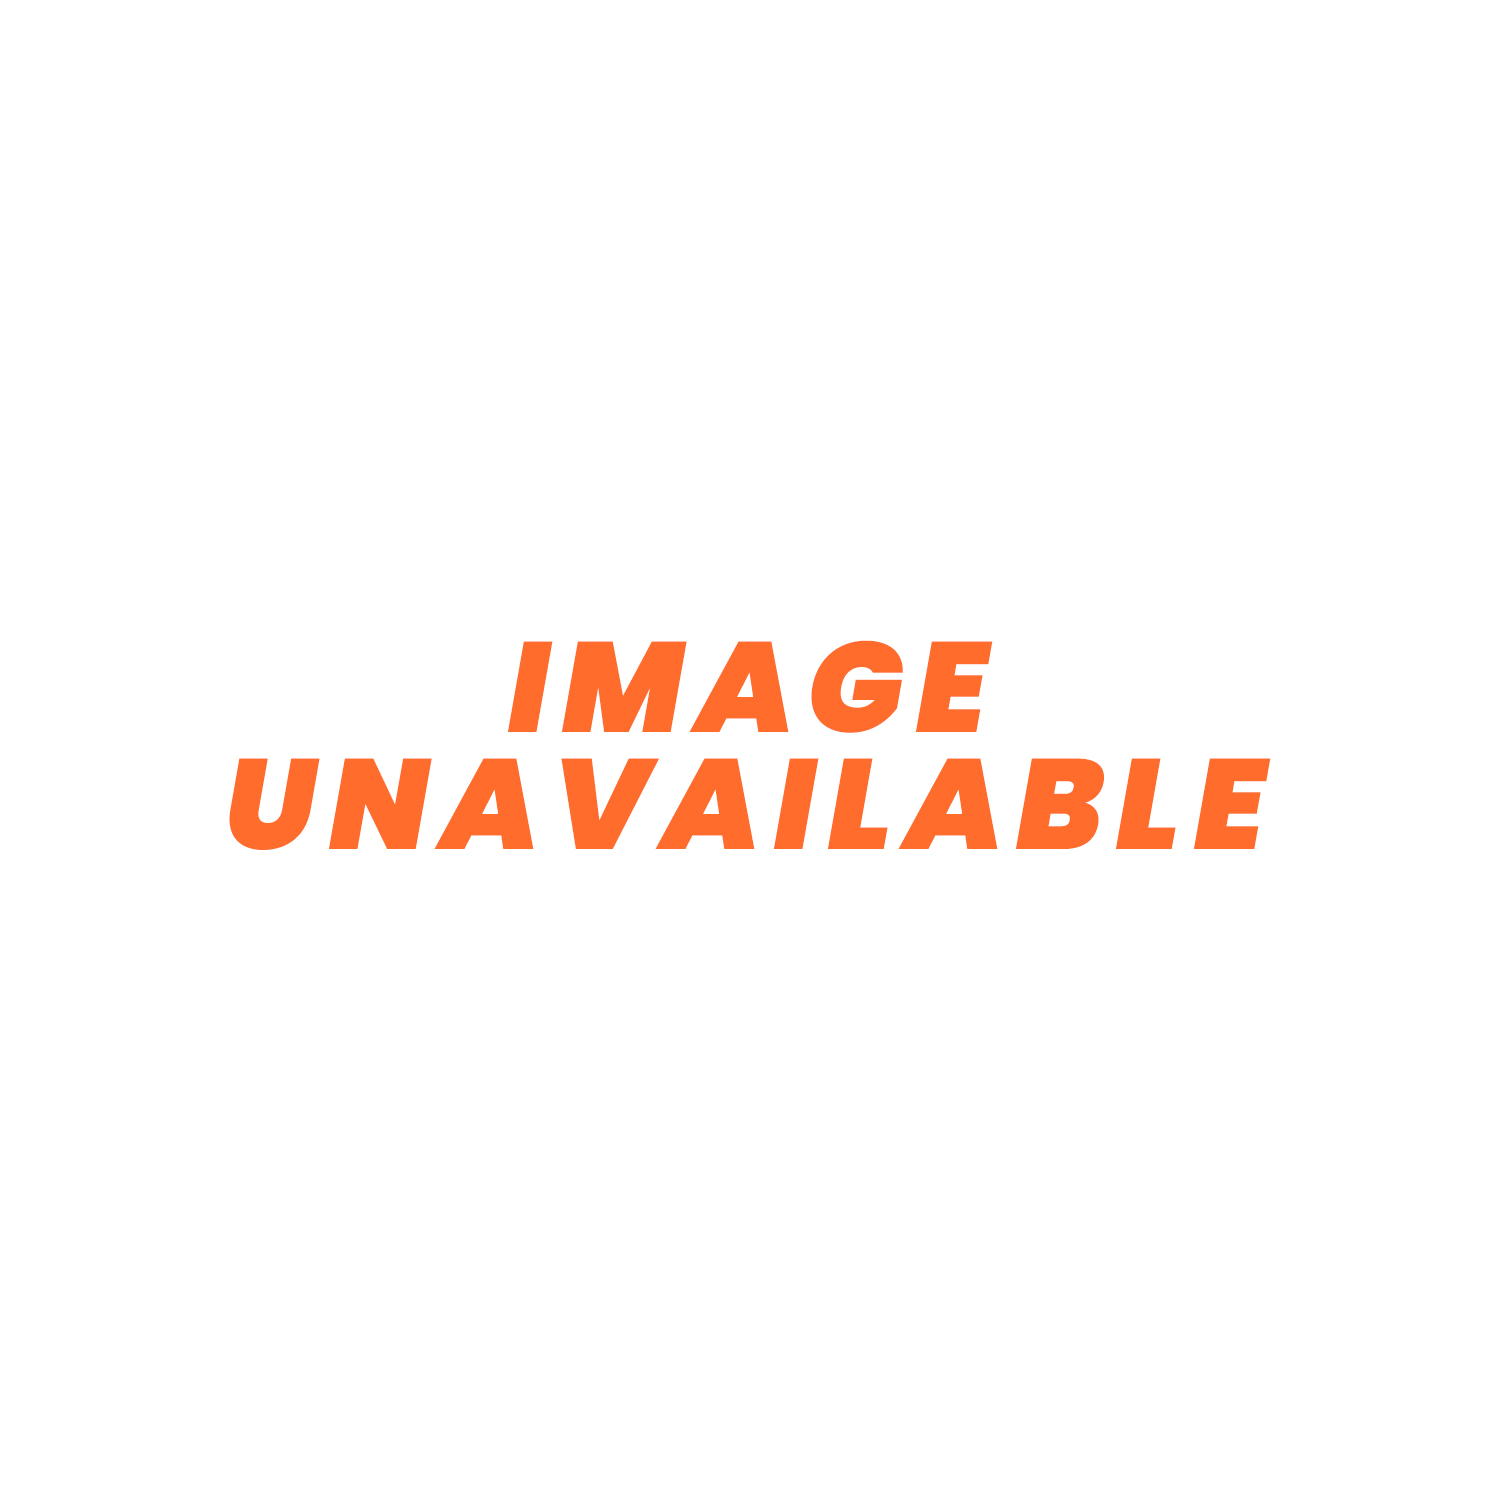 K20/K24 Timing Chain Tensioner Cover Close Up 2